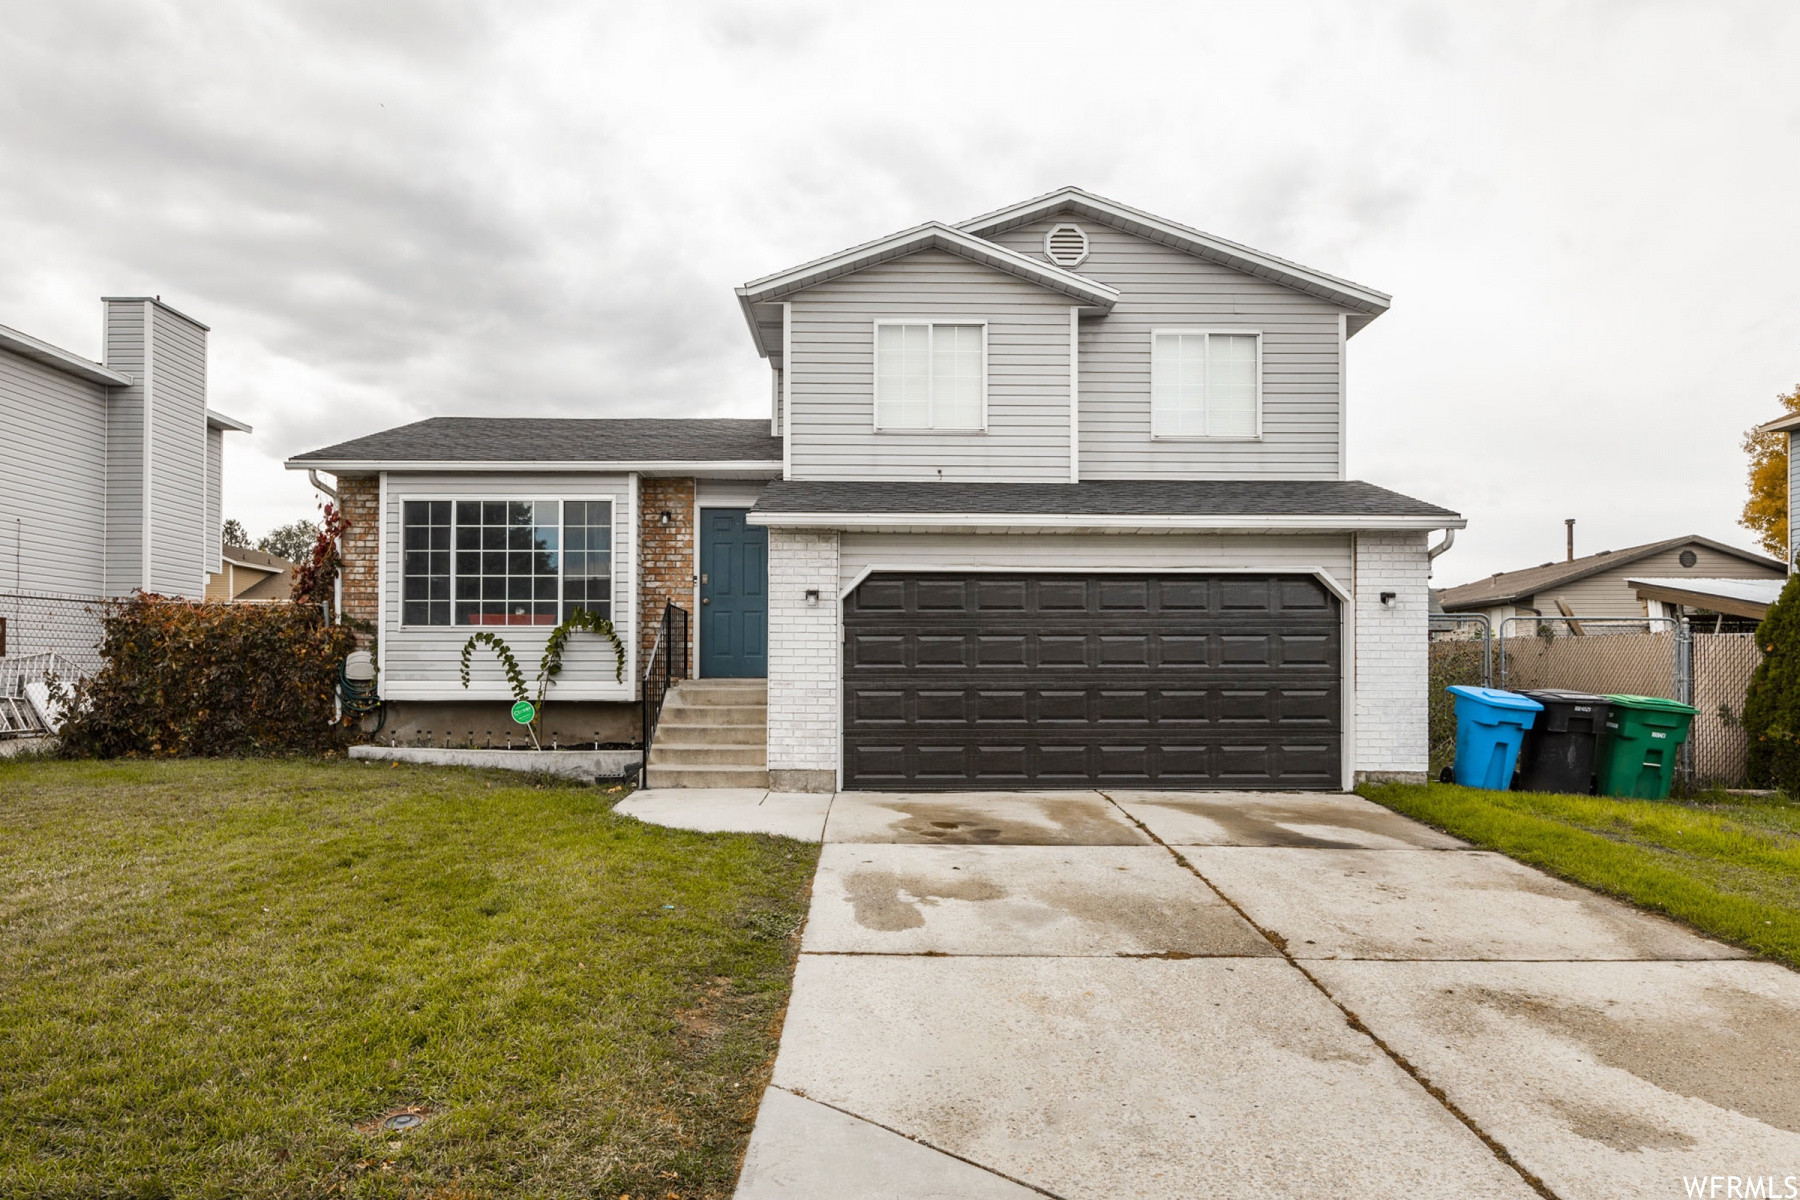 Remodeled 4-Bedroom House In Oquirrh Shadows